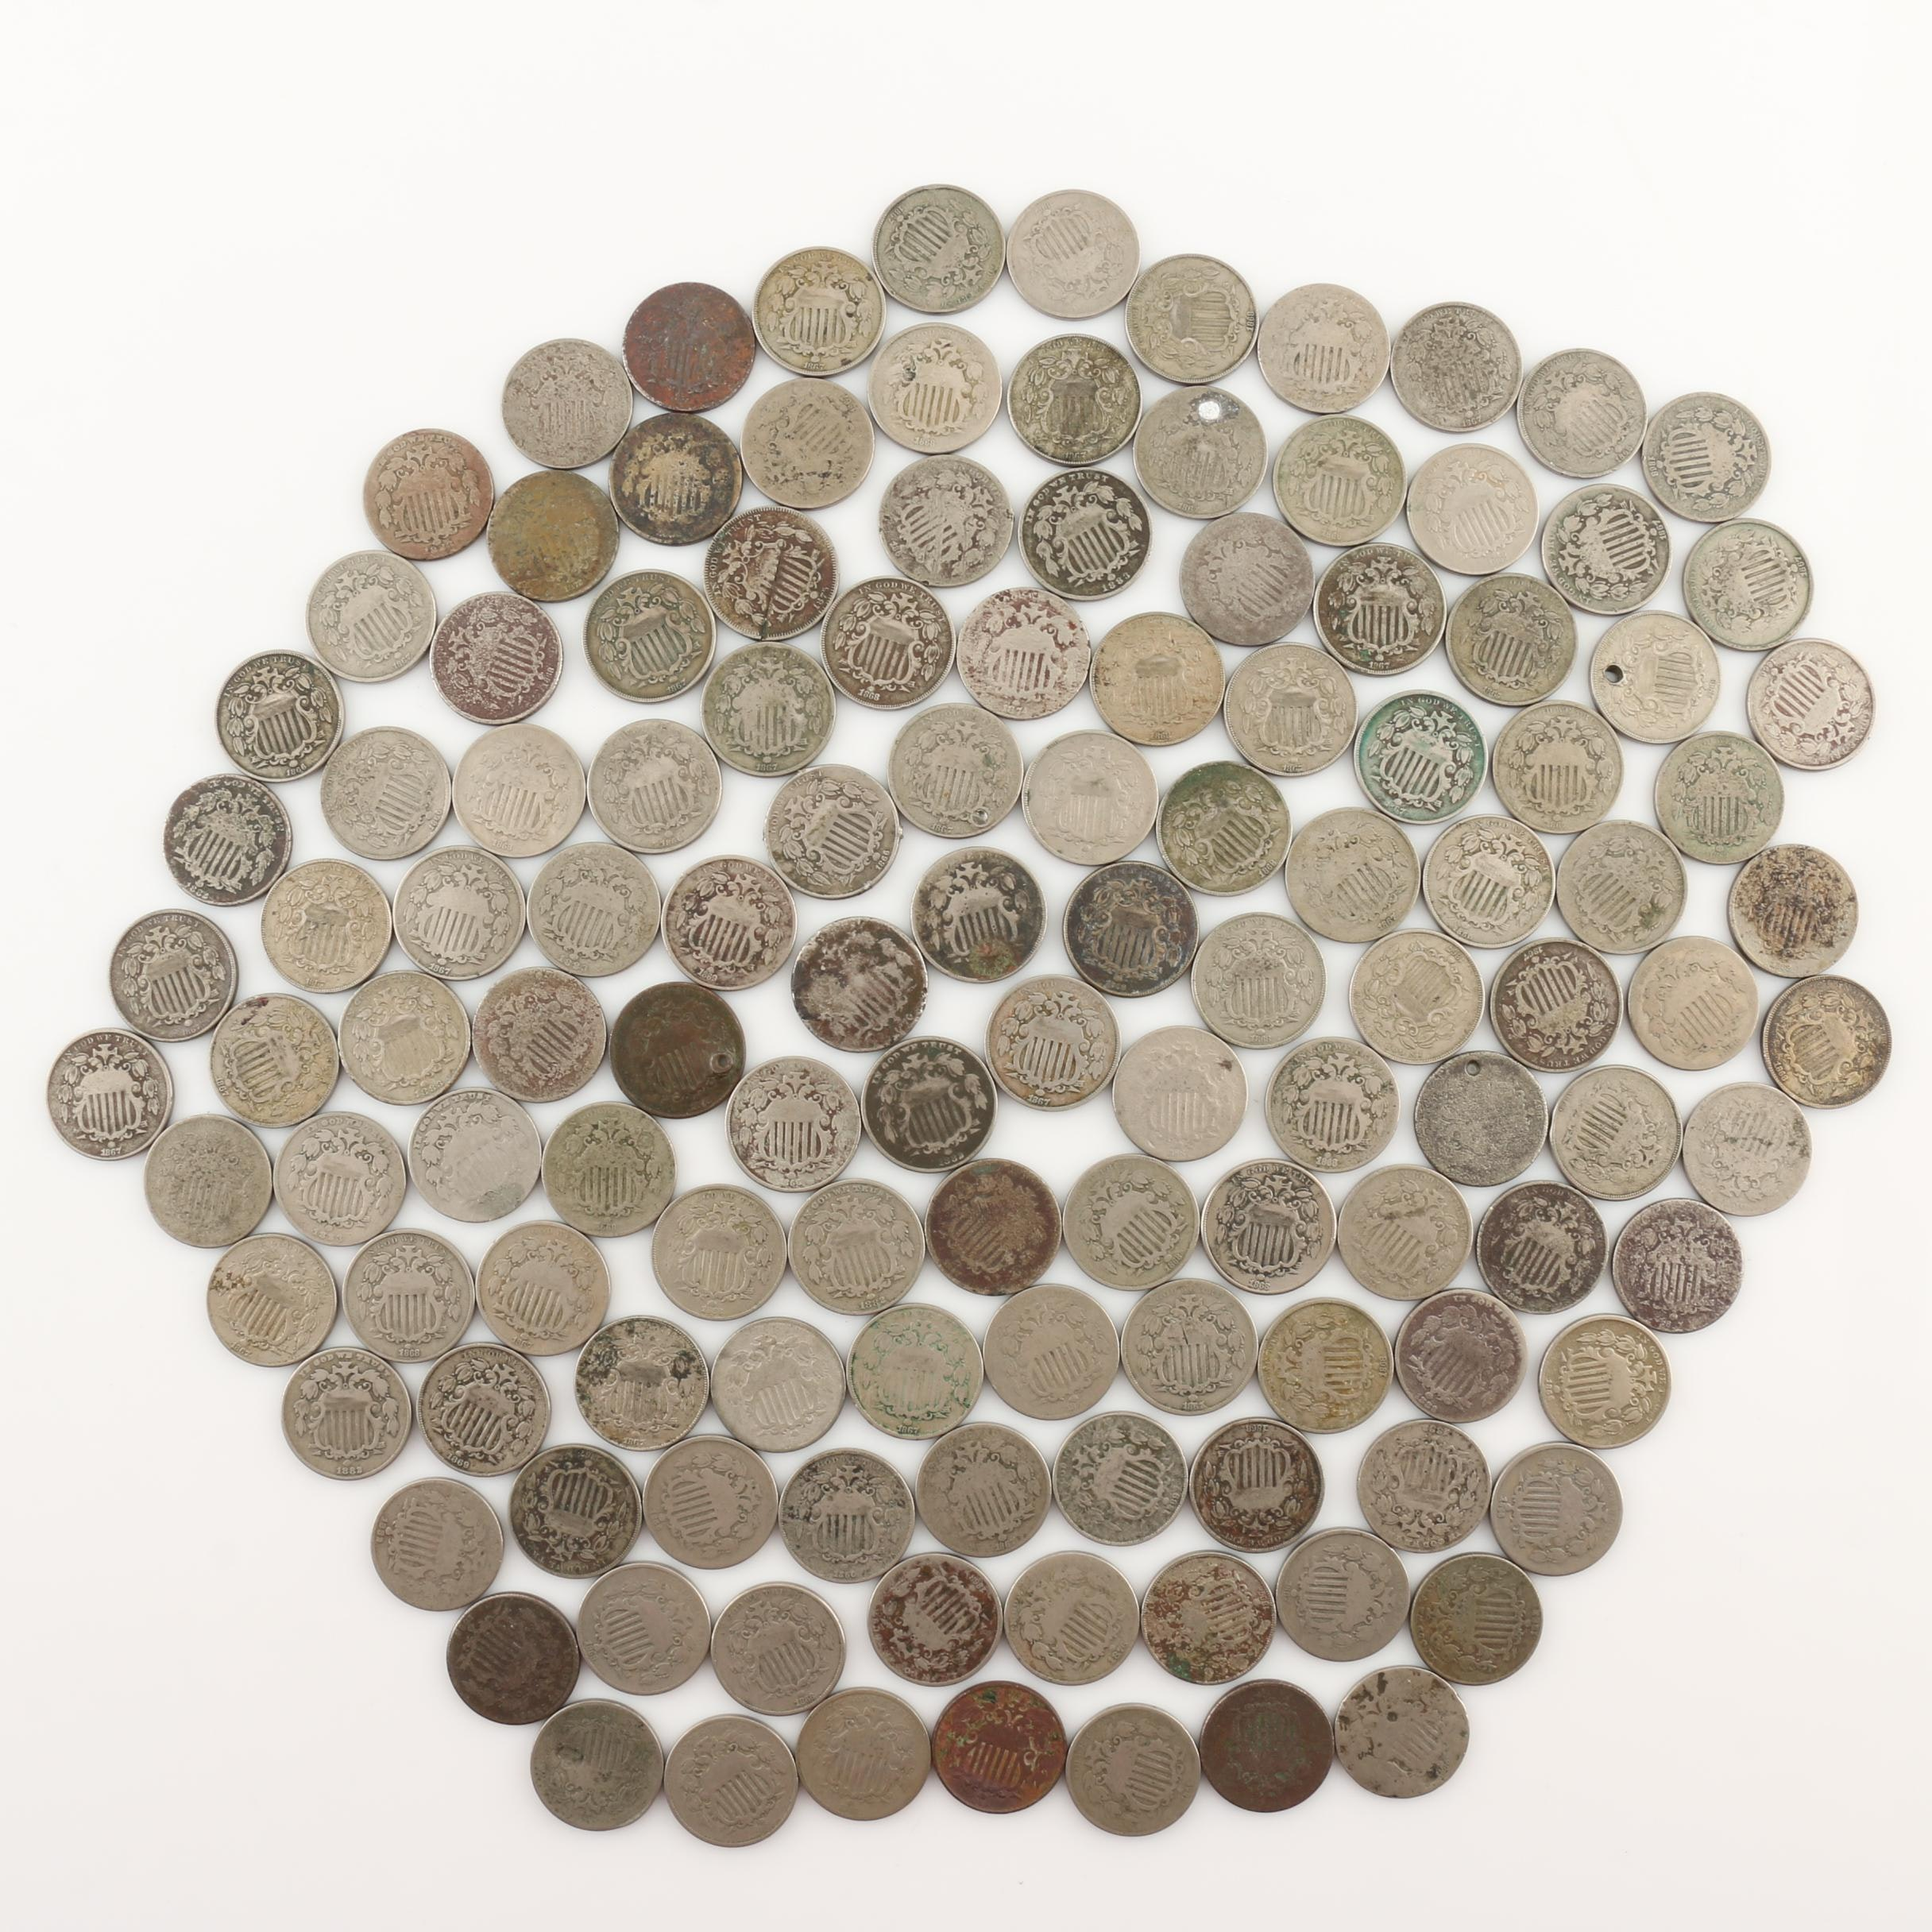 Group of 128 Shield Nickels From 1866 to 1883